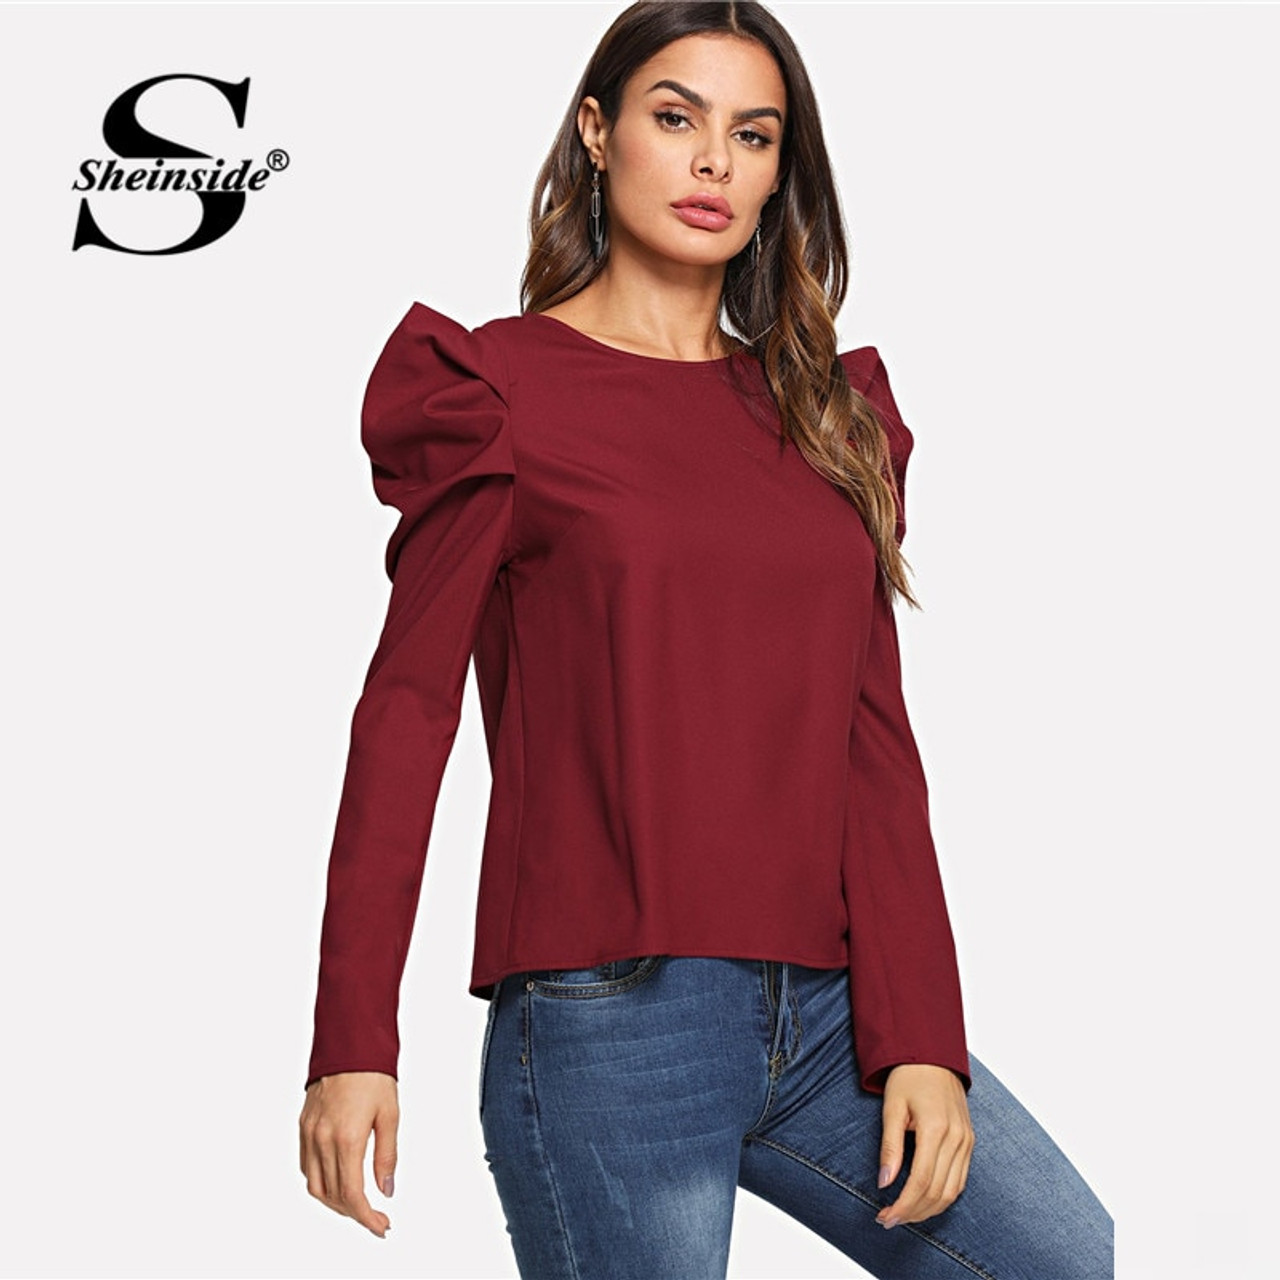 8540e44035 ... Sheinside Burgundy Ladies Work Top Solid Women Long Sleeve Round Neck  Elegant Blouse Autumn Casual Womens ...